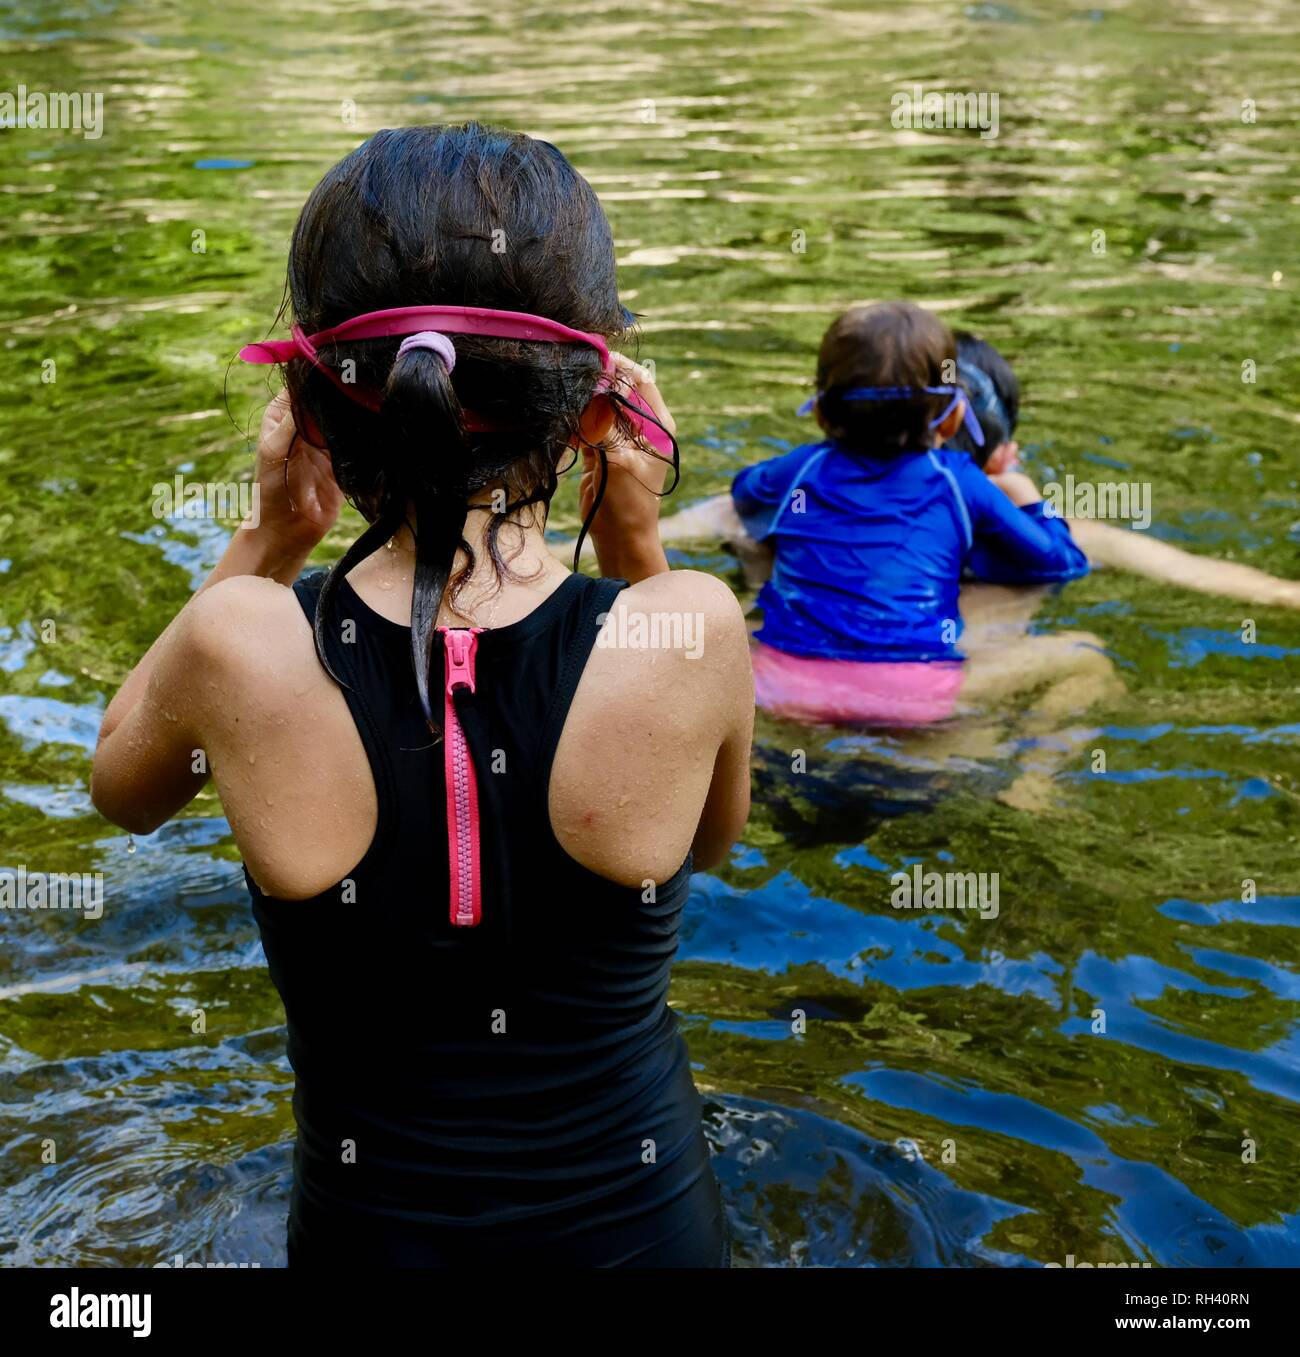 Mother swimming with daughter on back, Finch Hatton, Queensland 4756, Australia Stock Photo